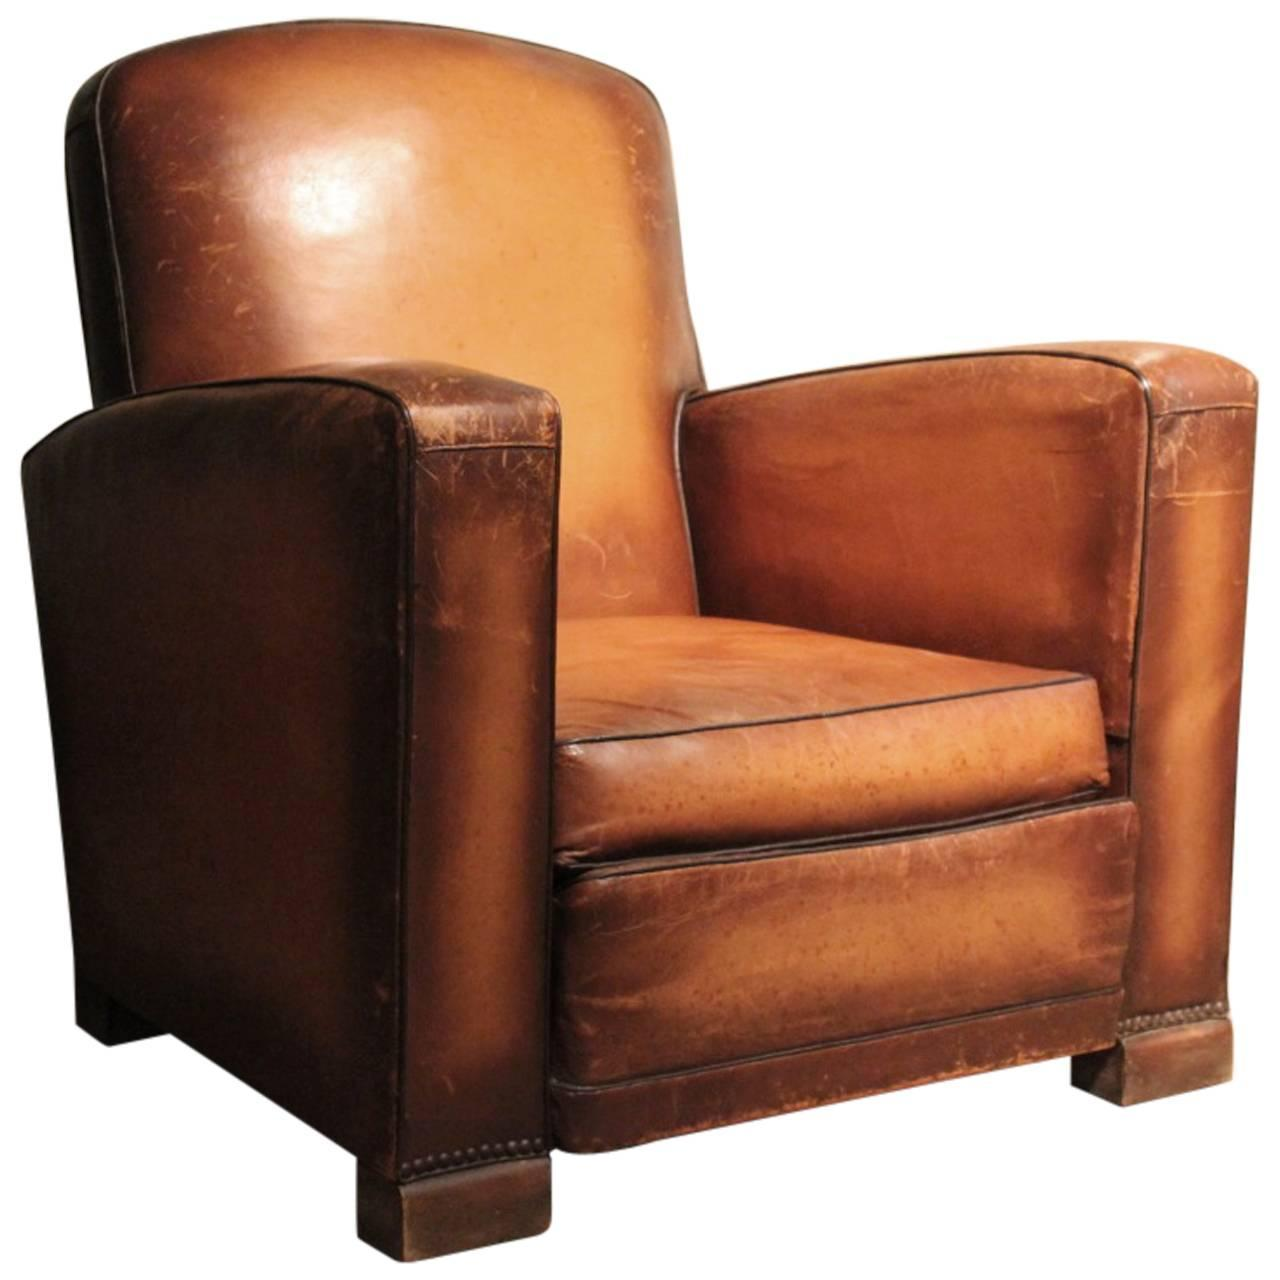 Circa 1930s Single Leather Armchair at 1stdibs